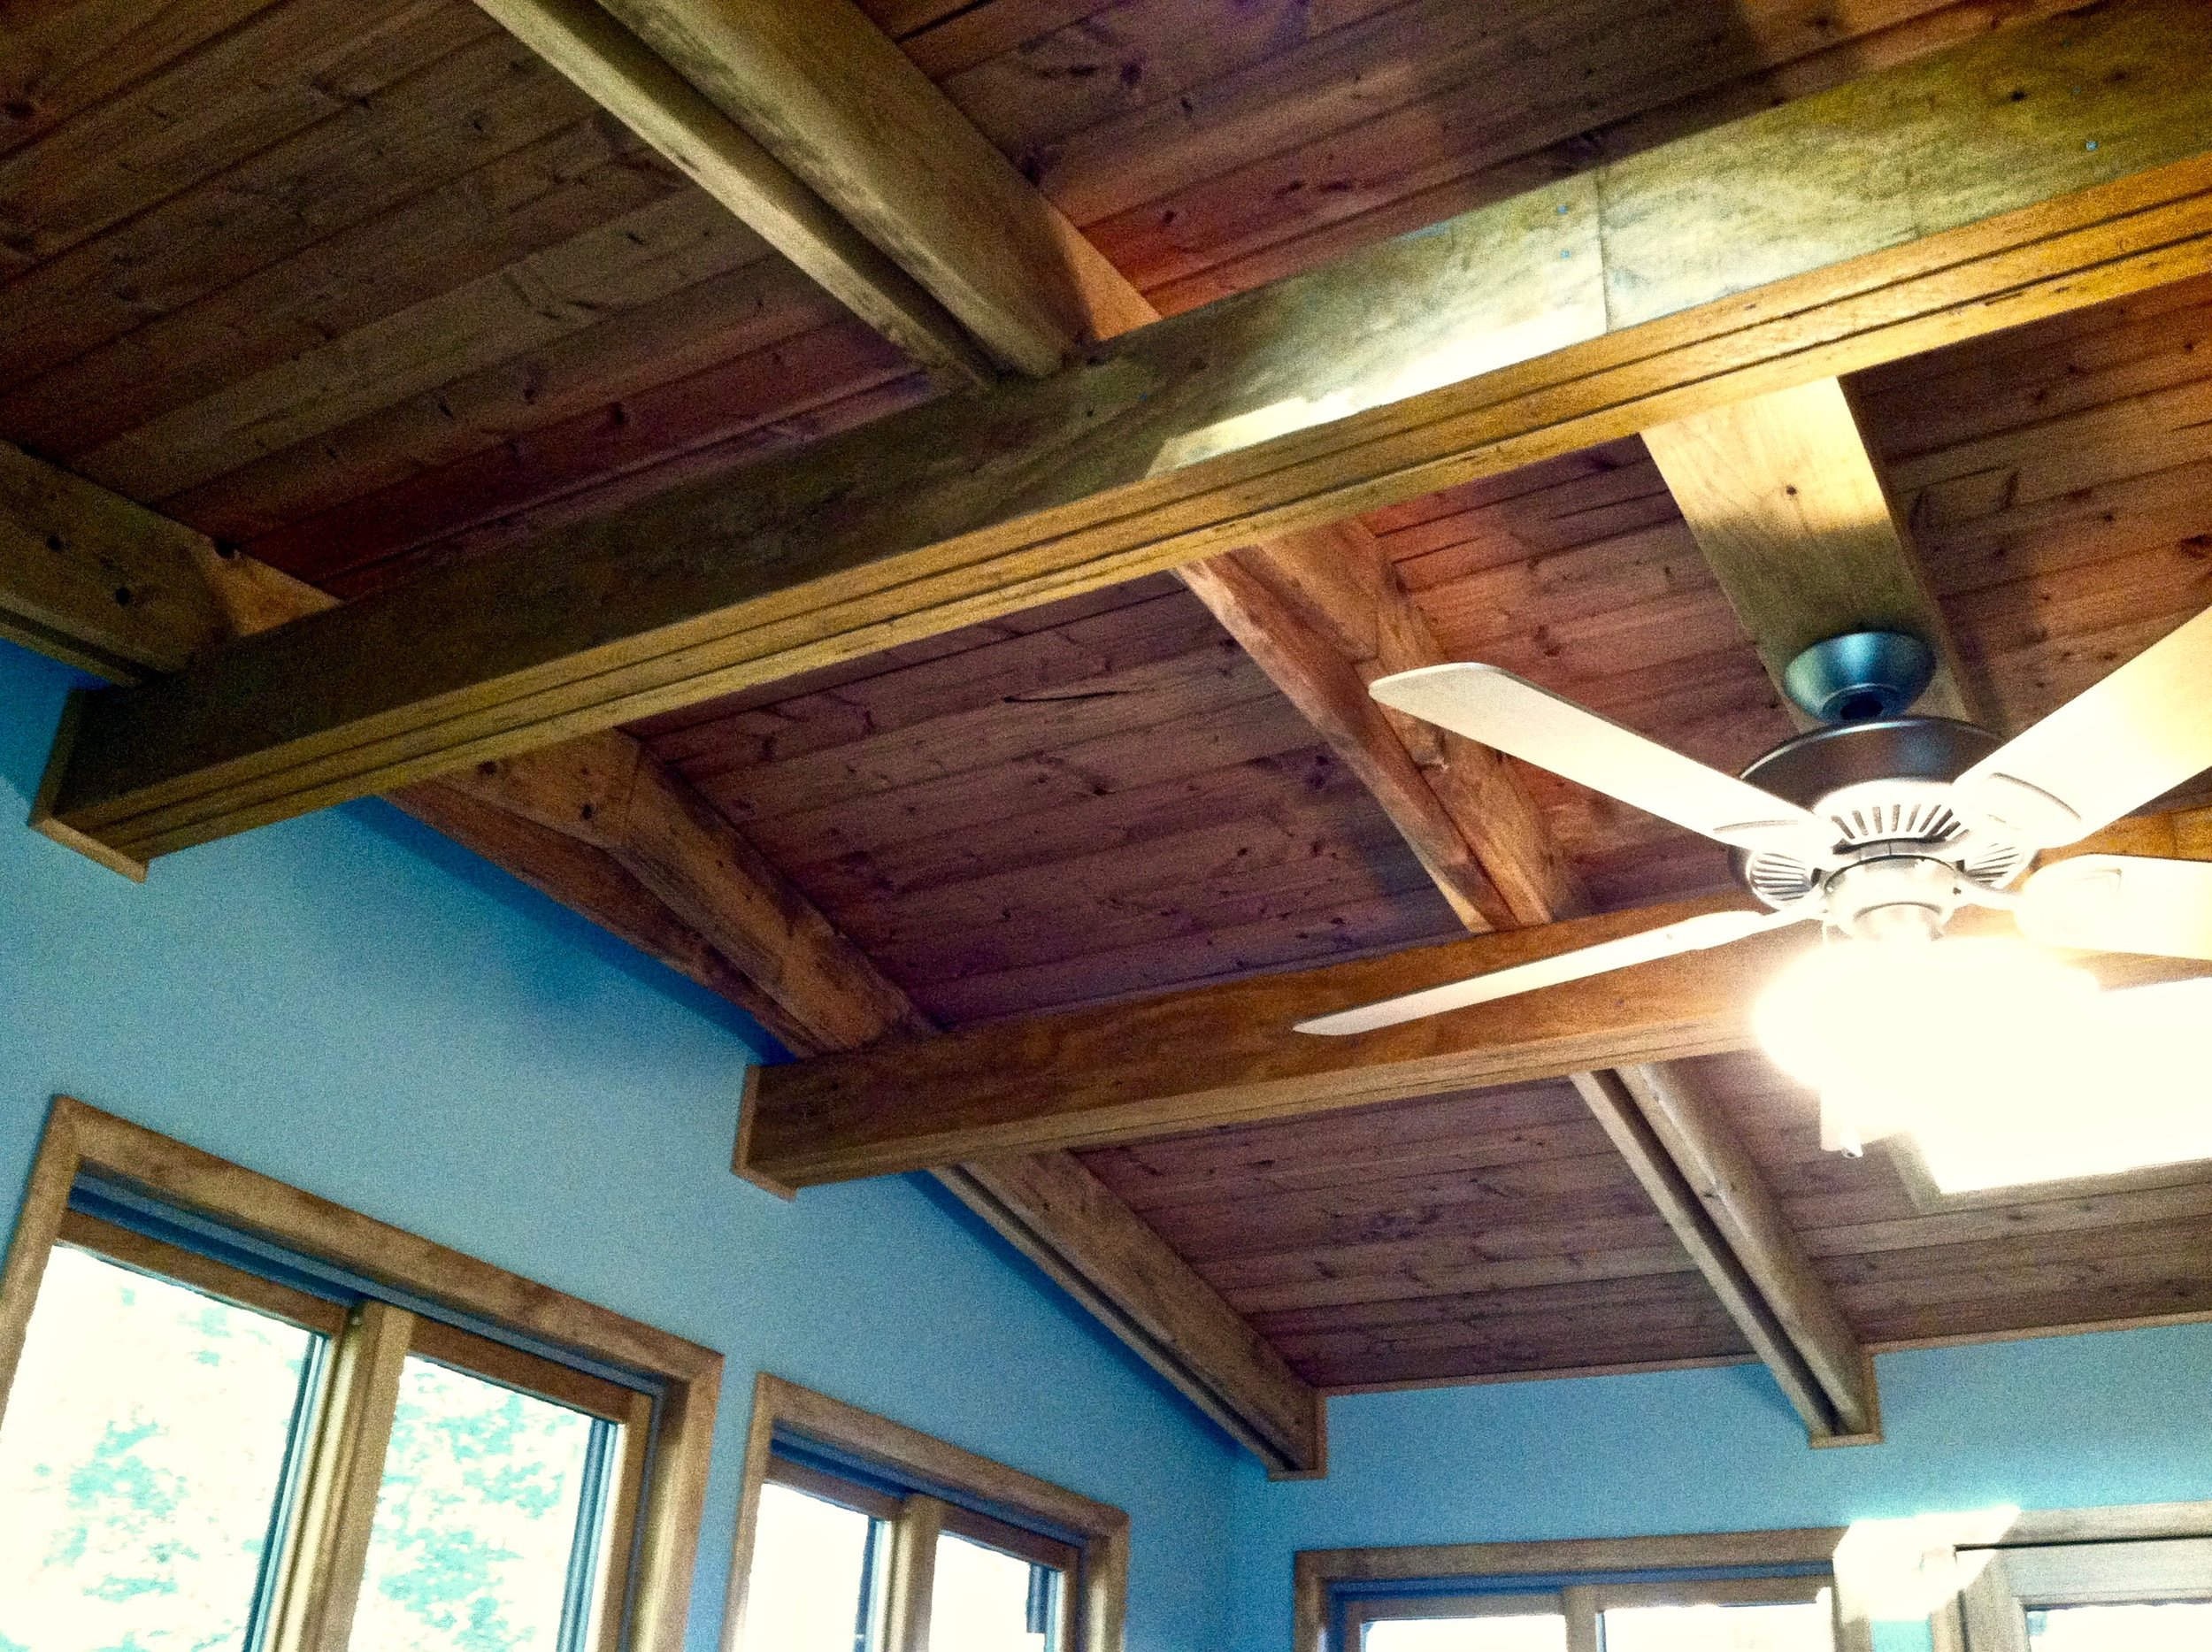 Ceiling featuring exposed beams